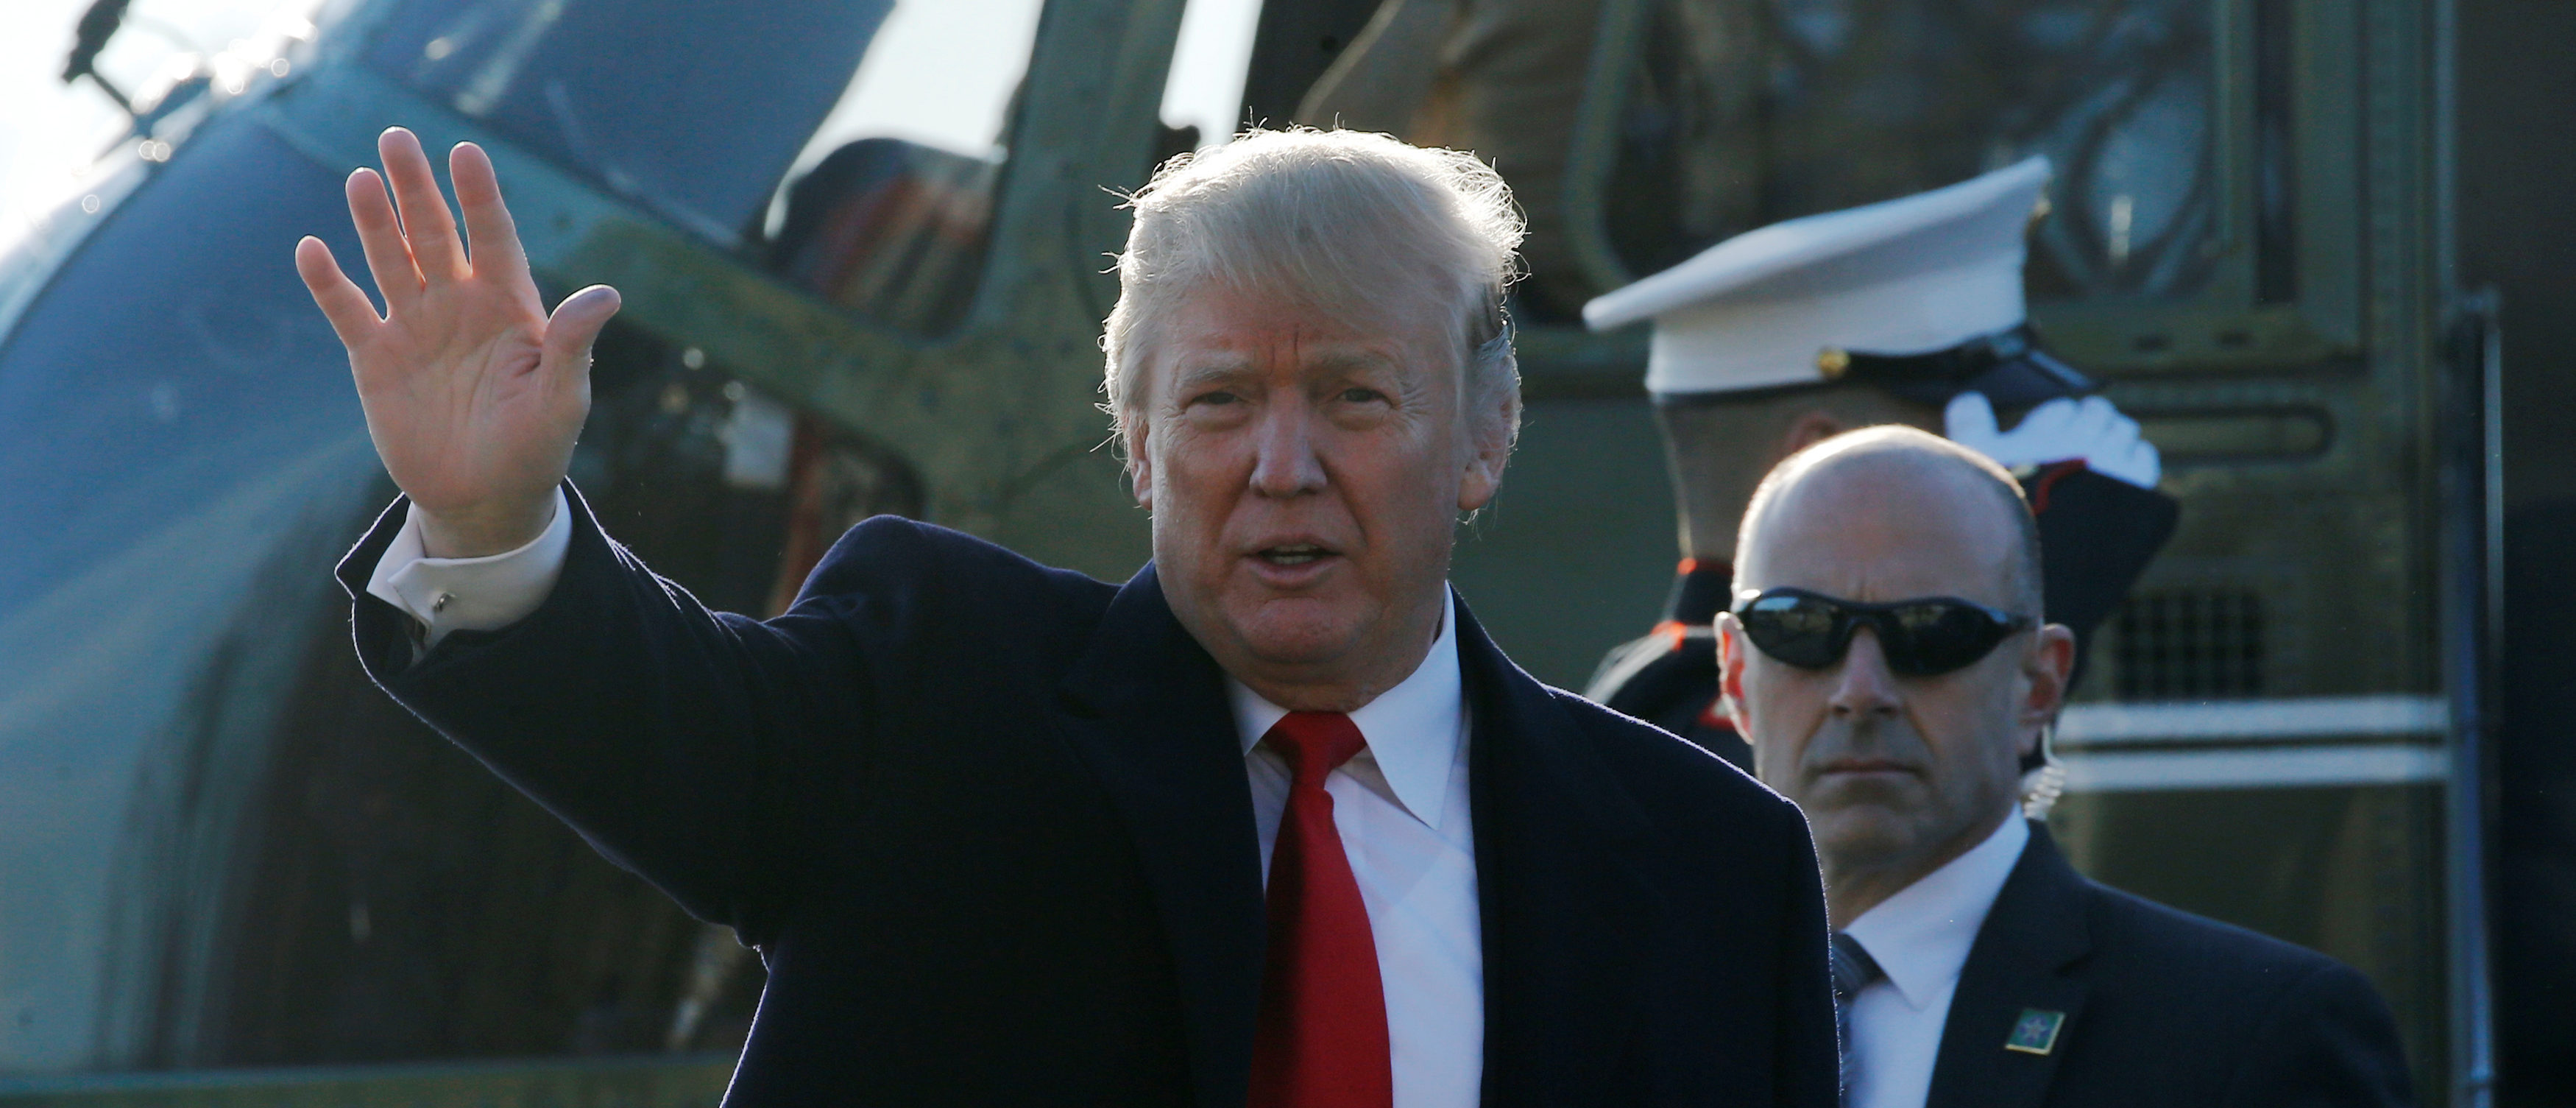 U.S. President Donald Trump arrives via the Marine One helicopter to visit injured military service members at Walter Reed National Military Medical Center in Bethesda, Maryland, U.S., December 21, 2017. REUTERS/Jonathan Ernst - RC124AD9D970